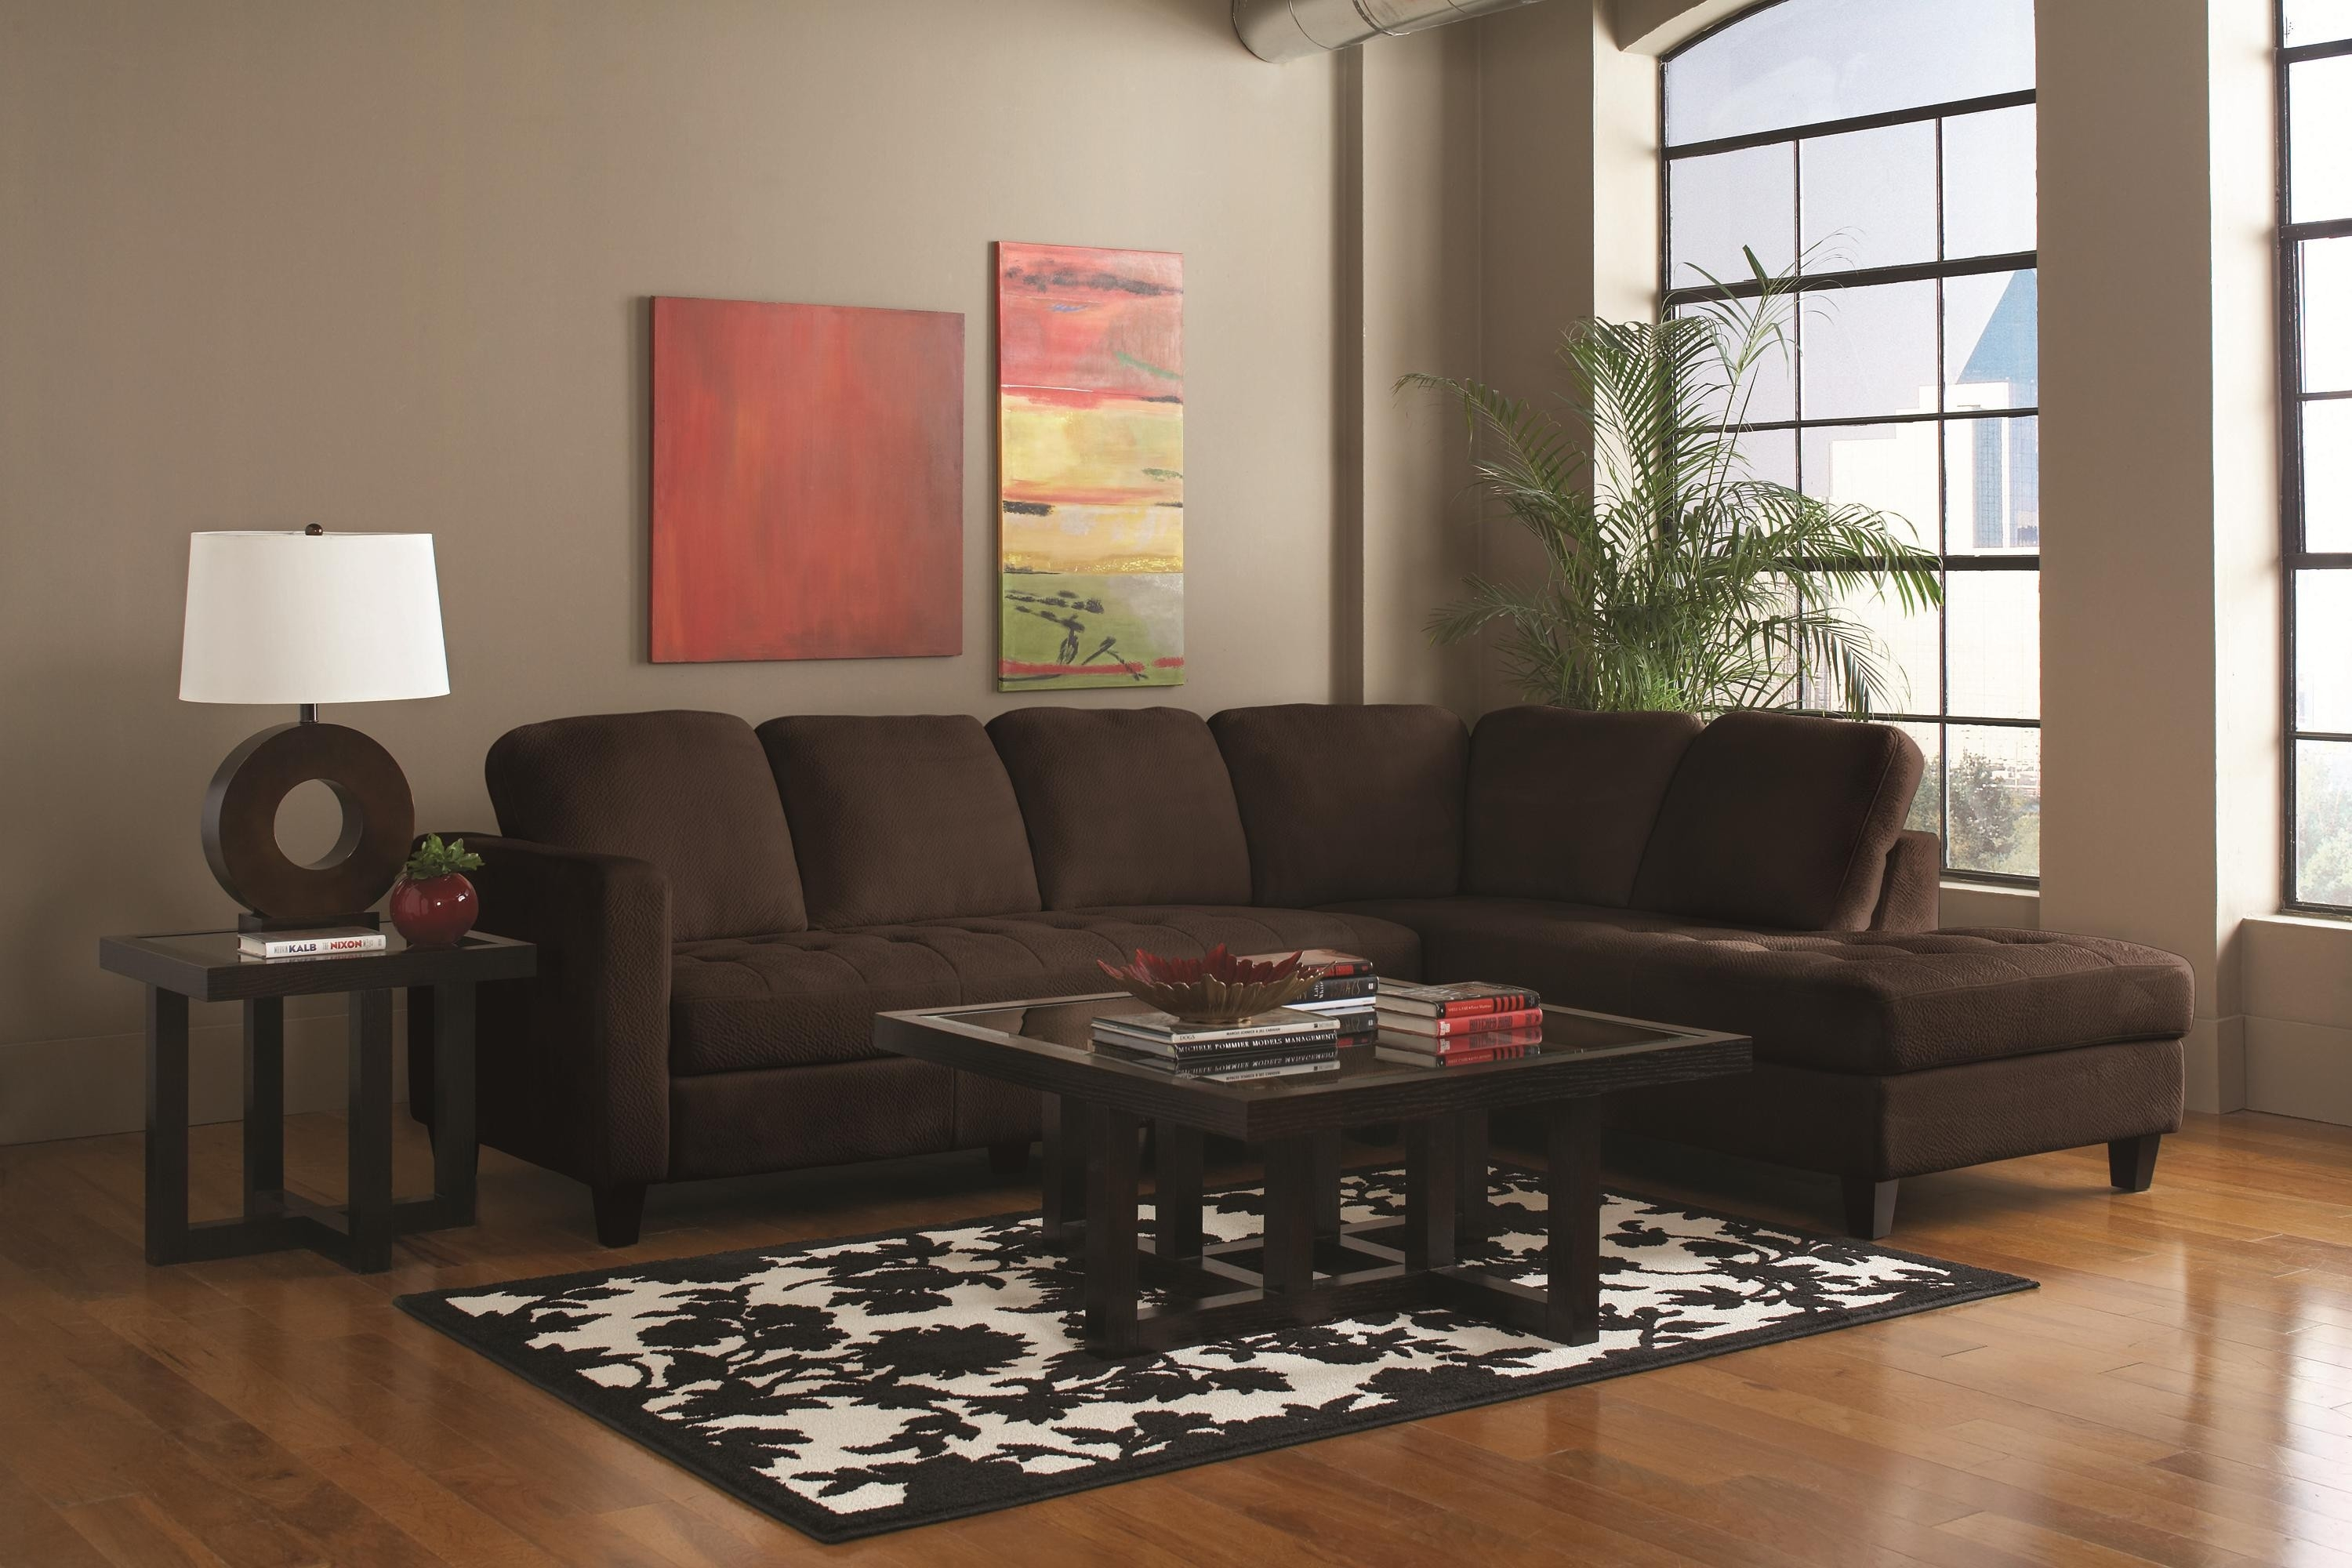 Popular Photo of Coffee Table For Sectional Sofa With Chaise